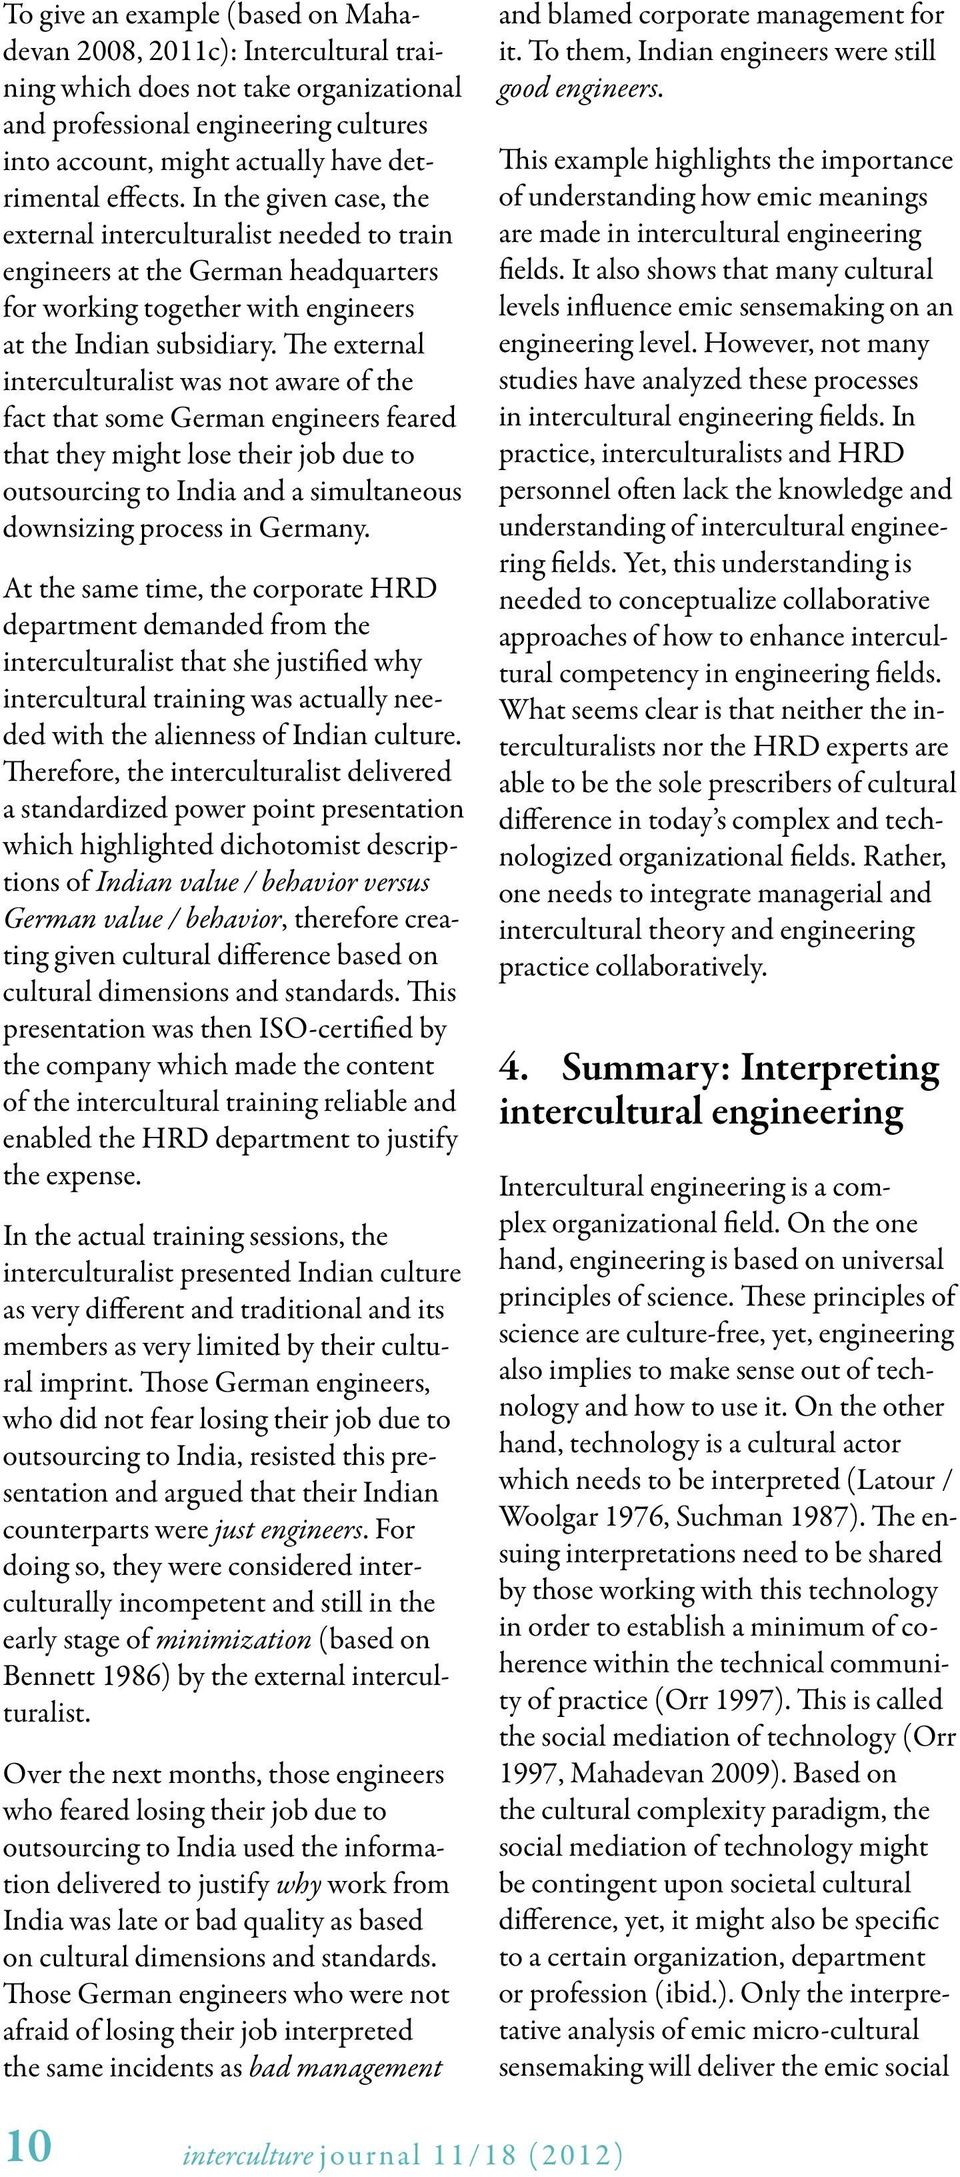 The external interculturalist was not aware of the fact that some German engineers feared that they might lose their job due to outsourcing to India and a simultaneous downsizing process in Germany.